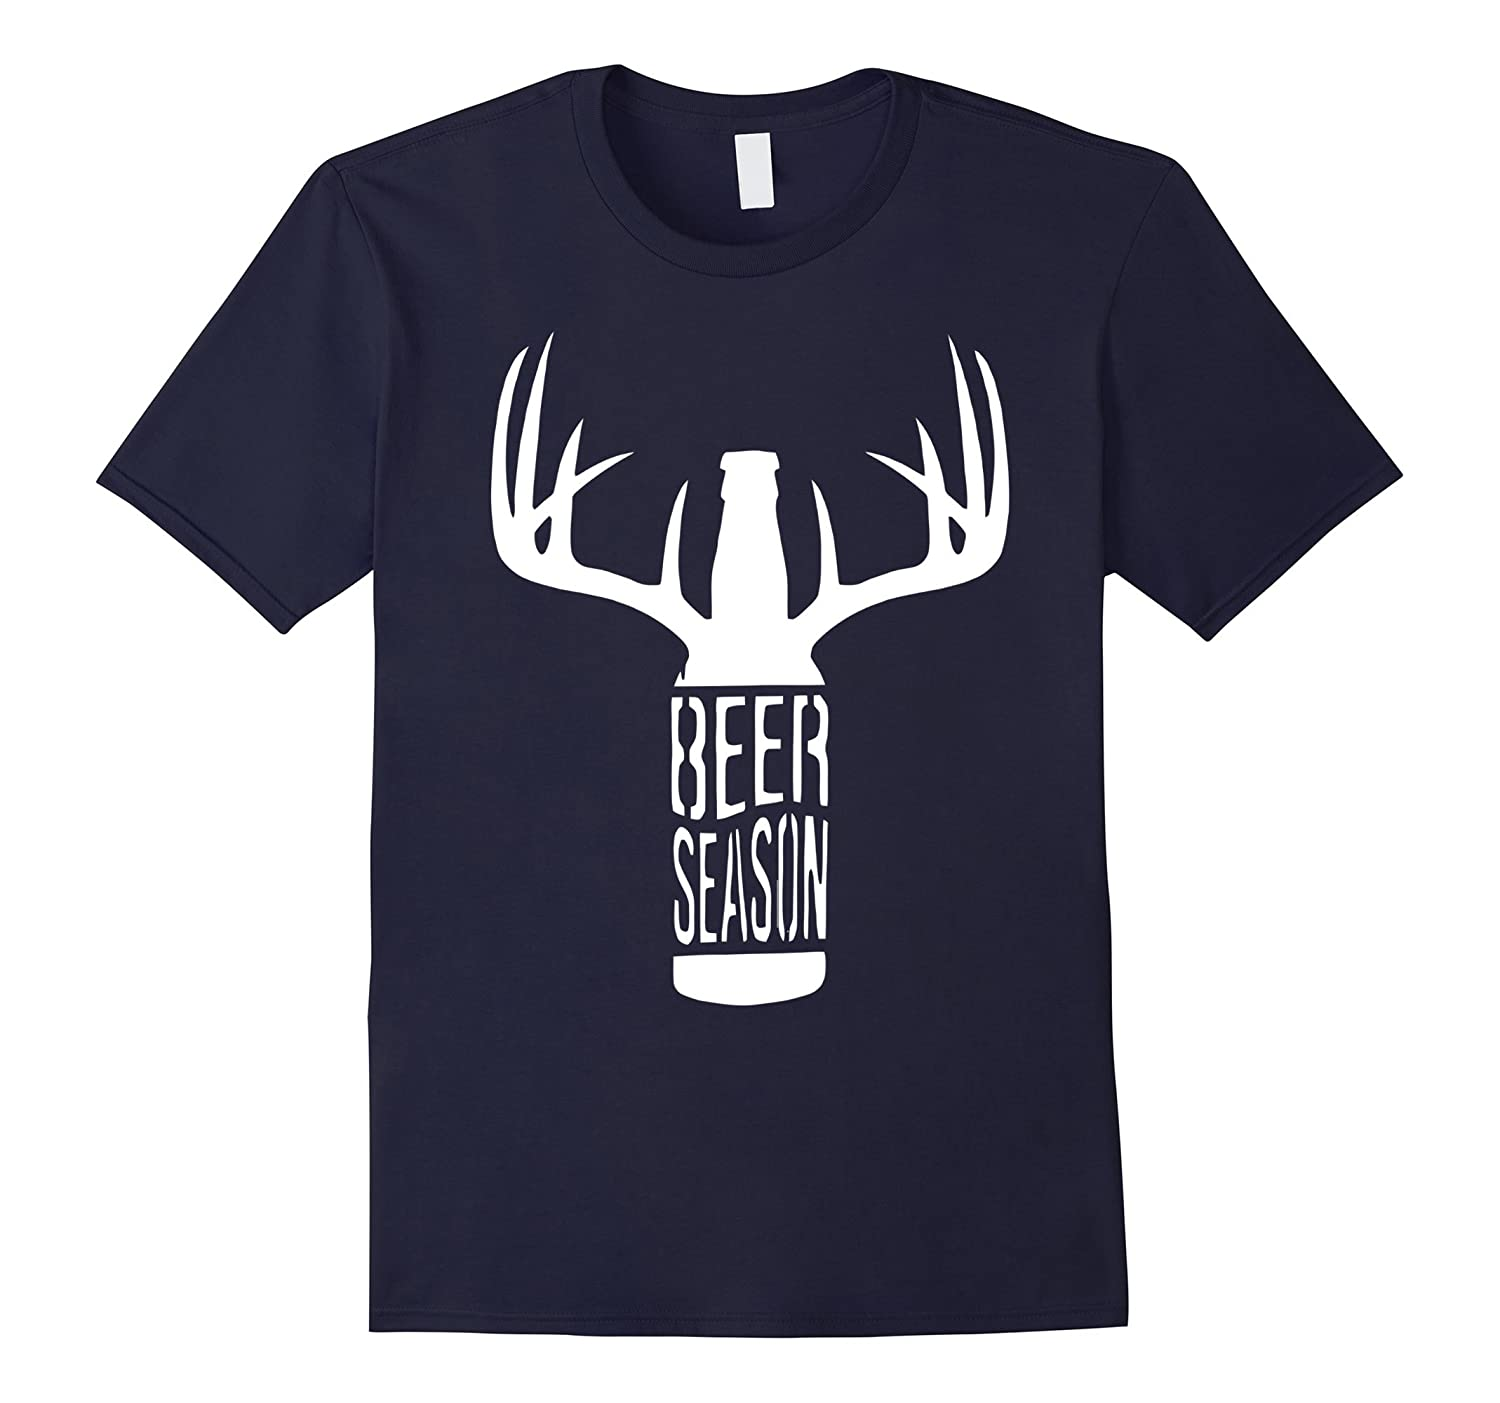 Beer Season Merry Christmas T Shirt-CL